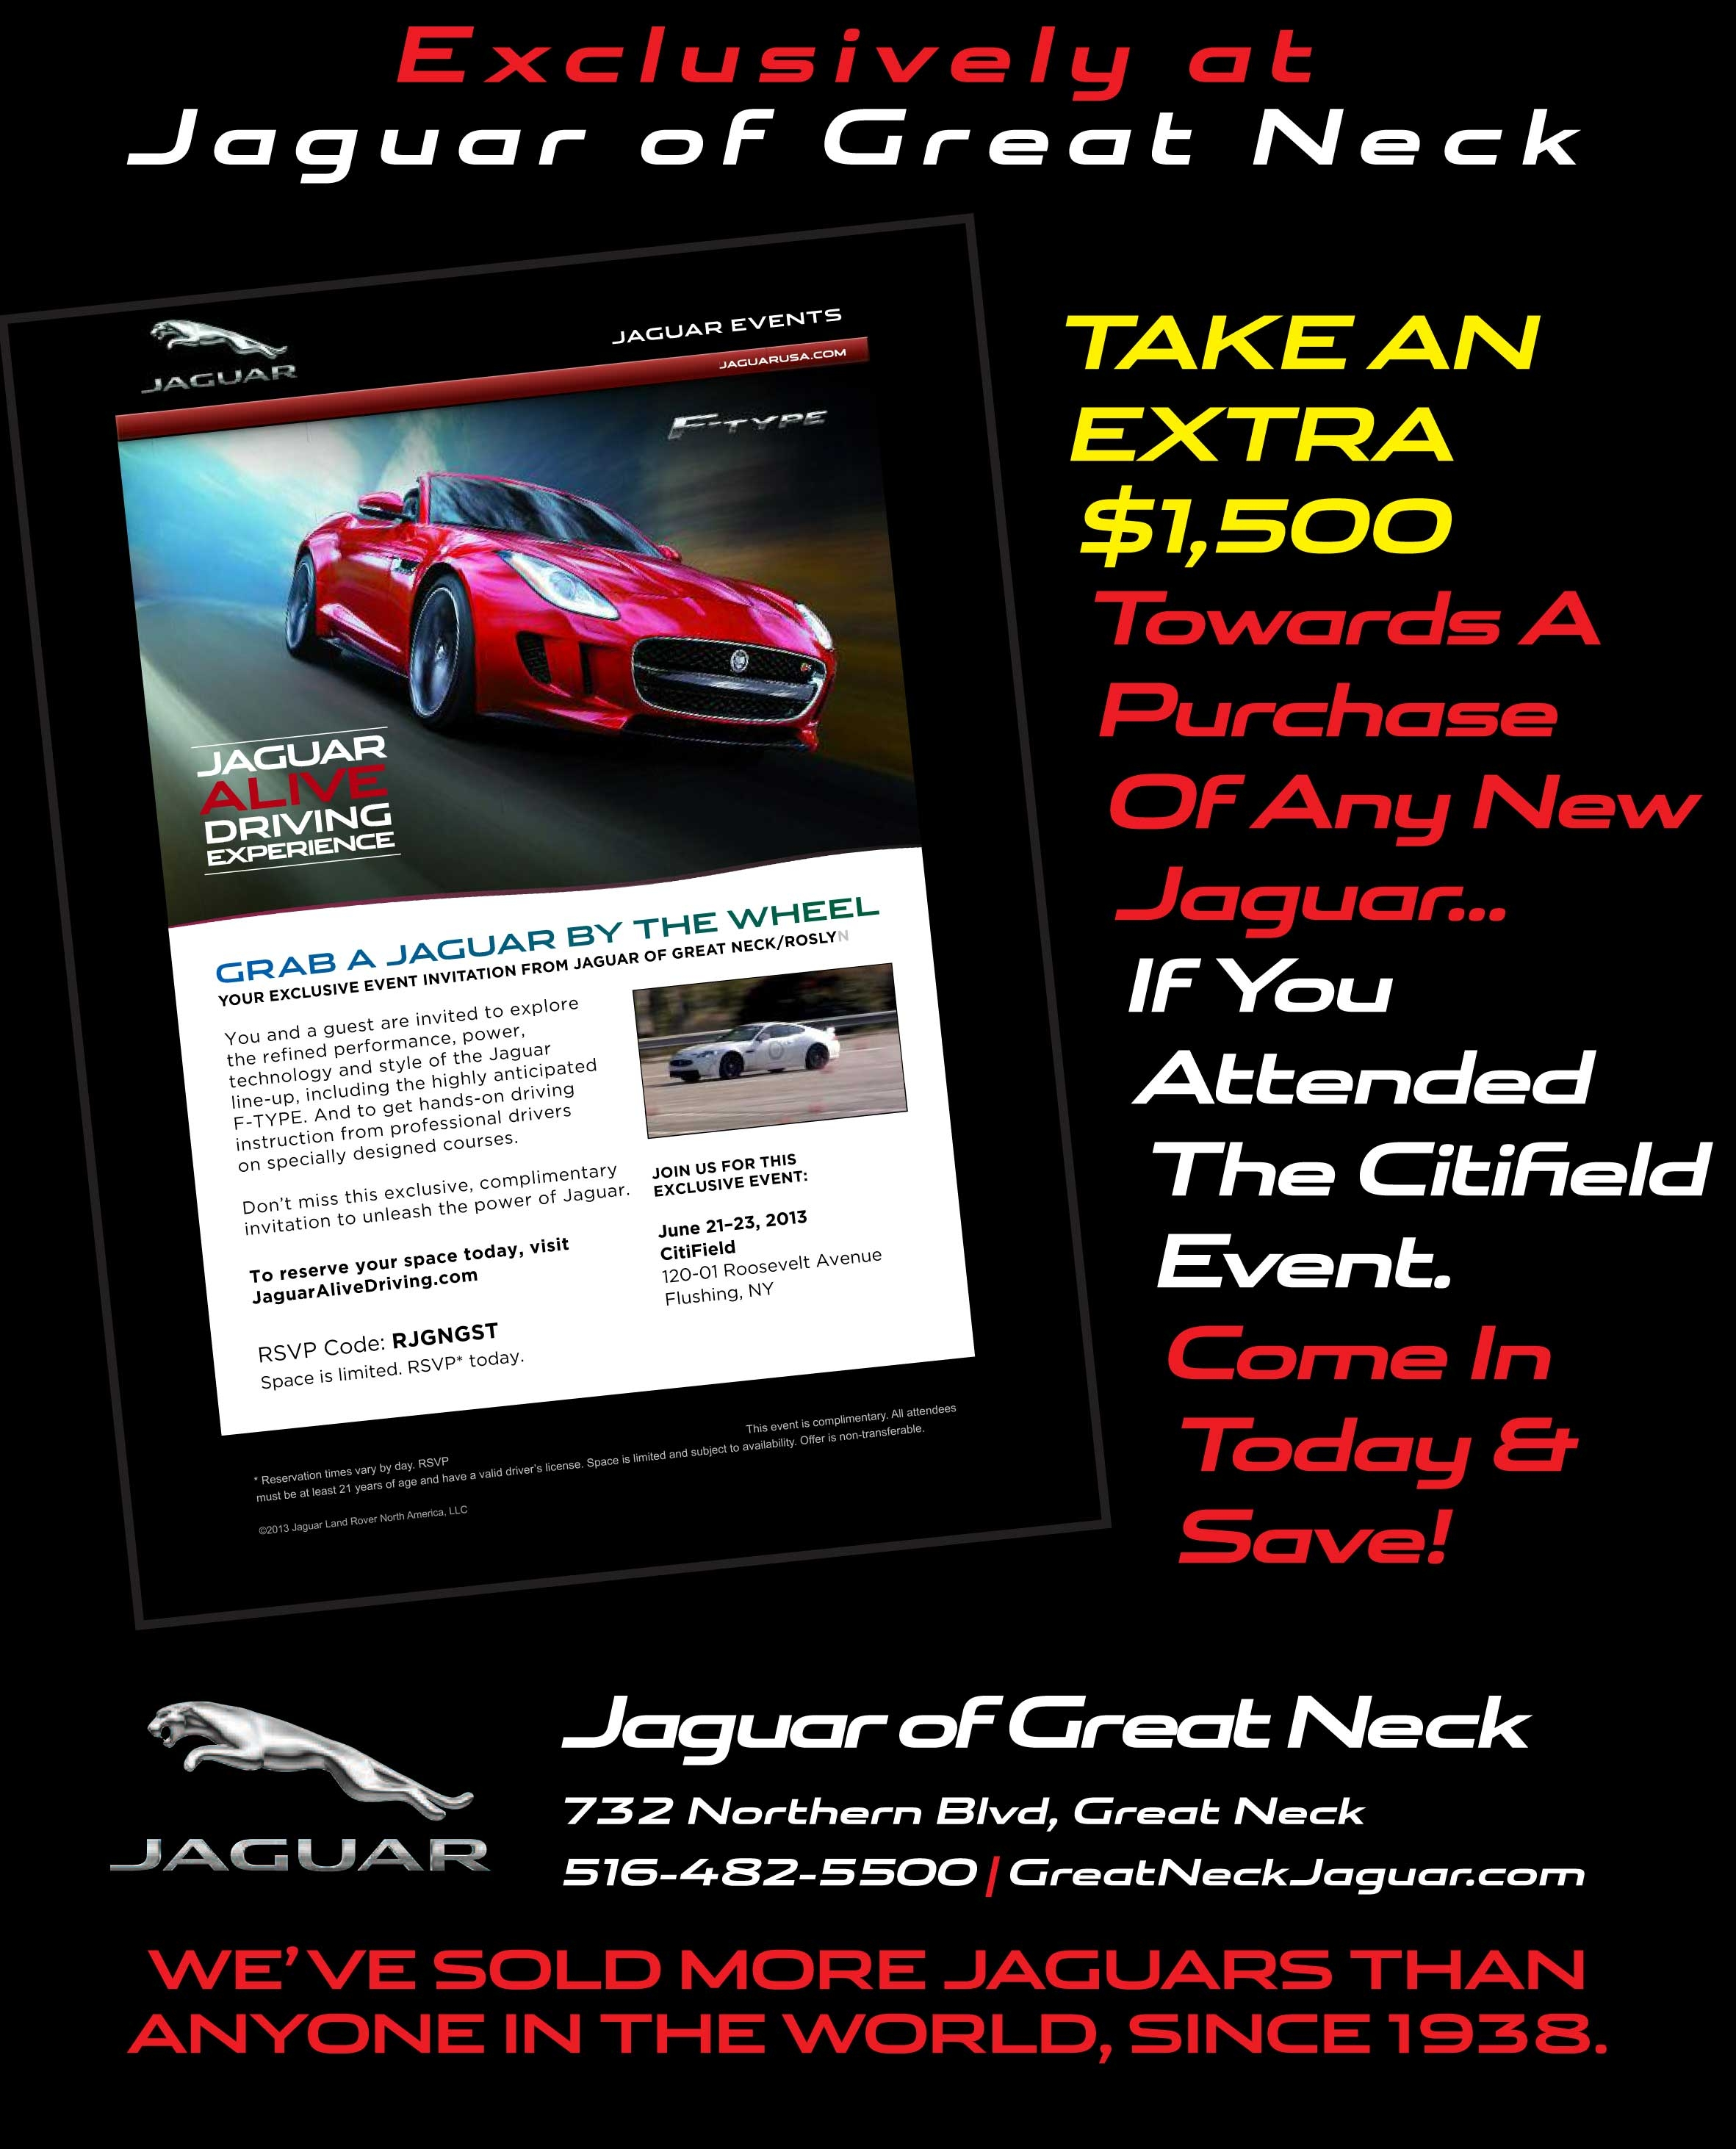 Marvelous Jaguar Great Neck 732 Northern Blvd Great Neck, NY Car Service   MapQuest